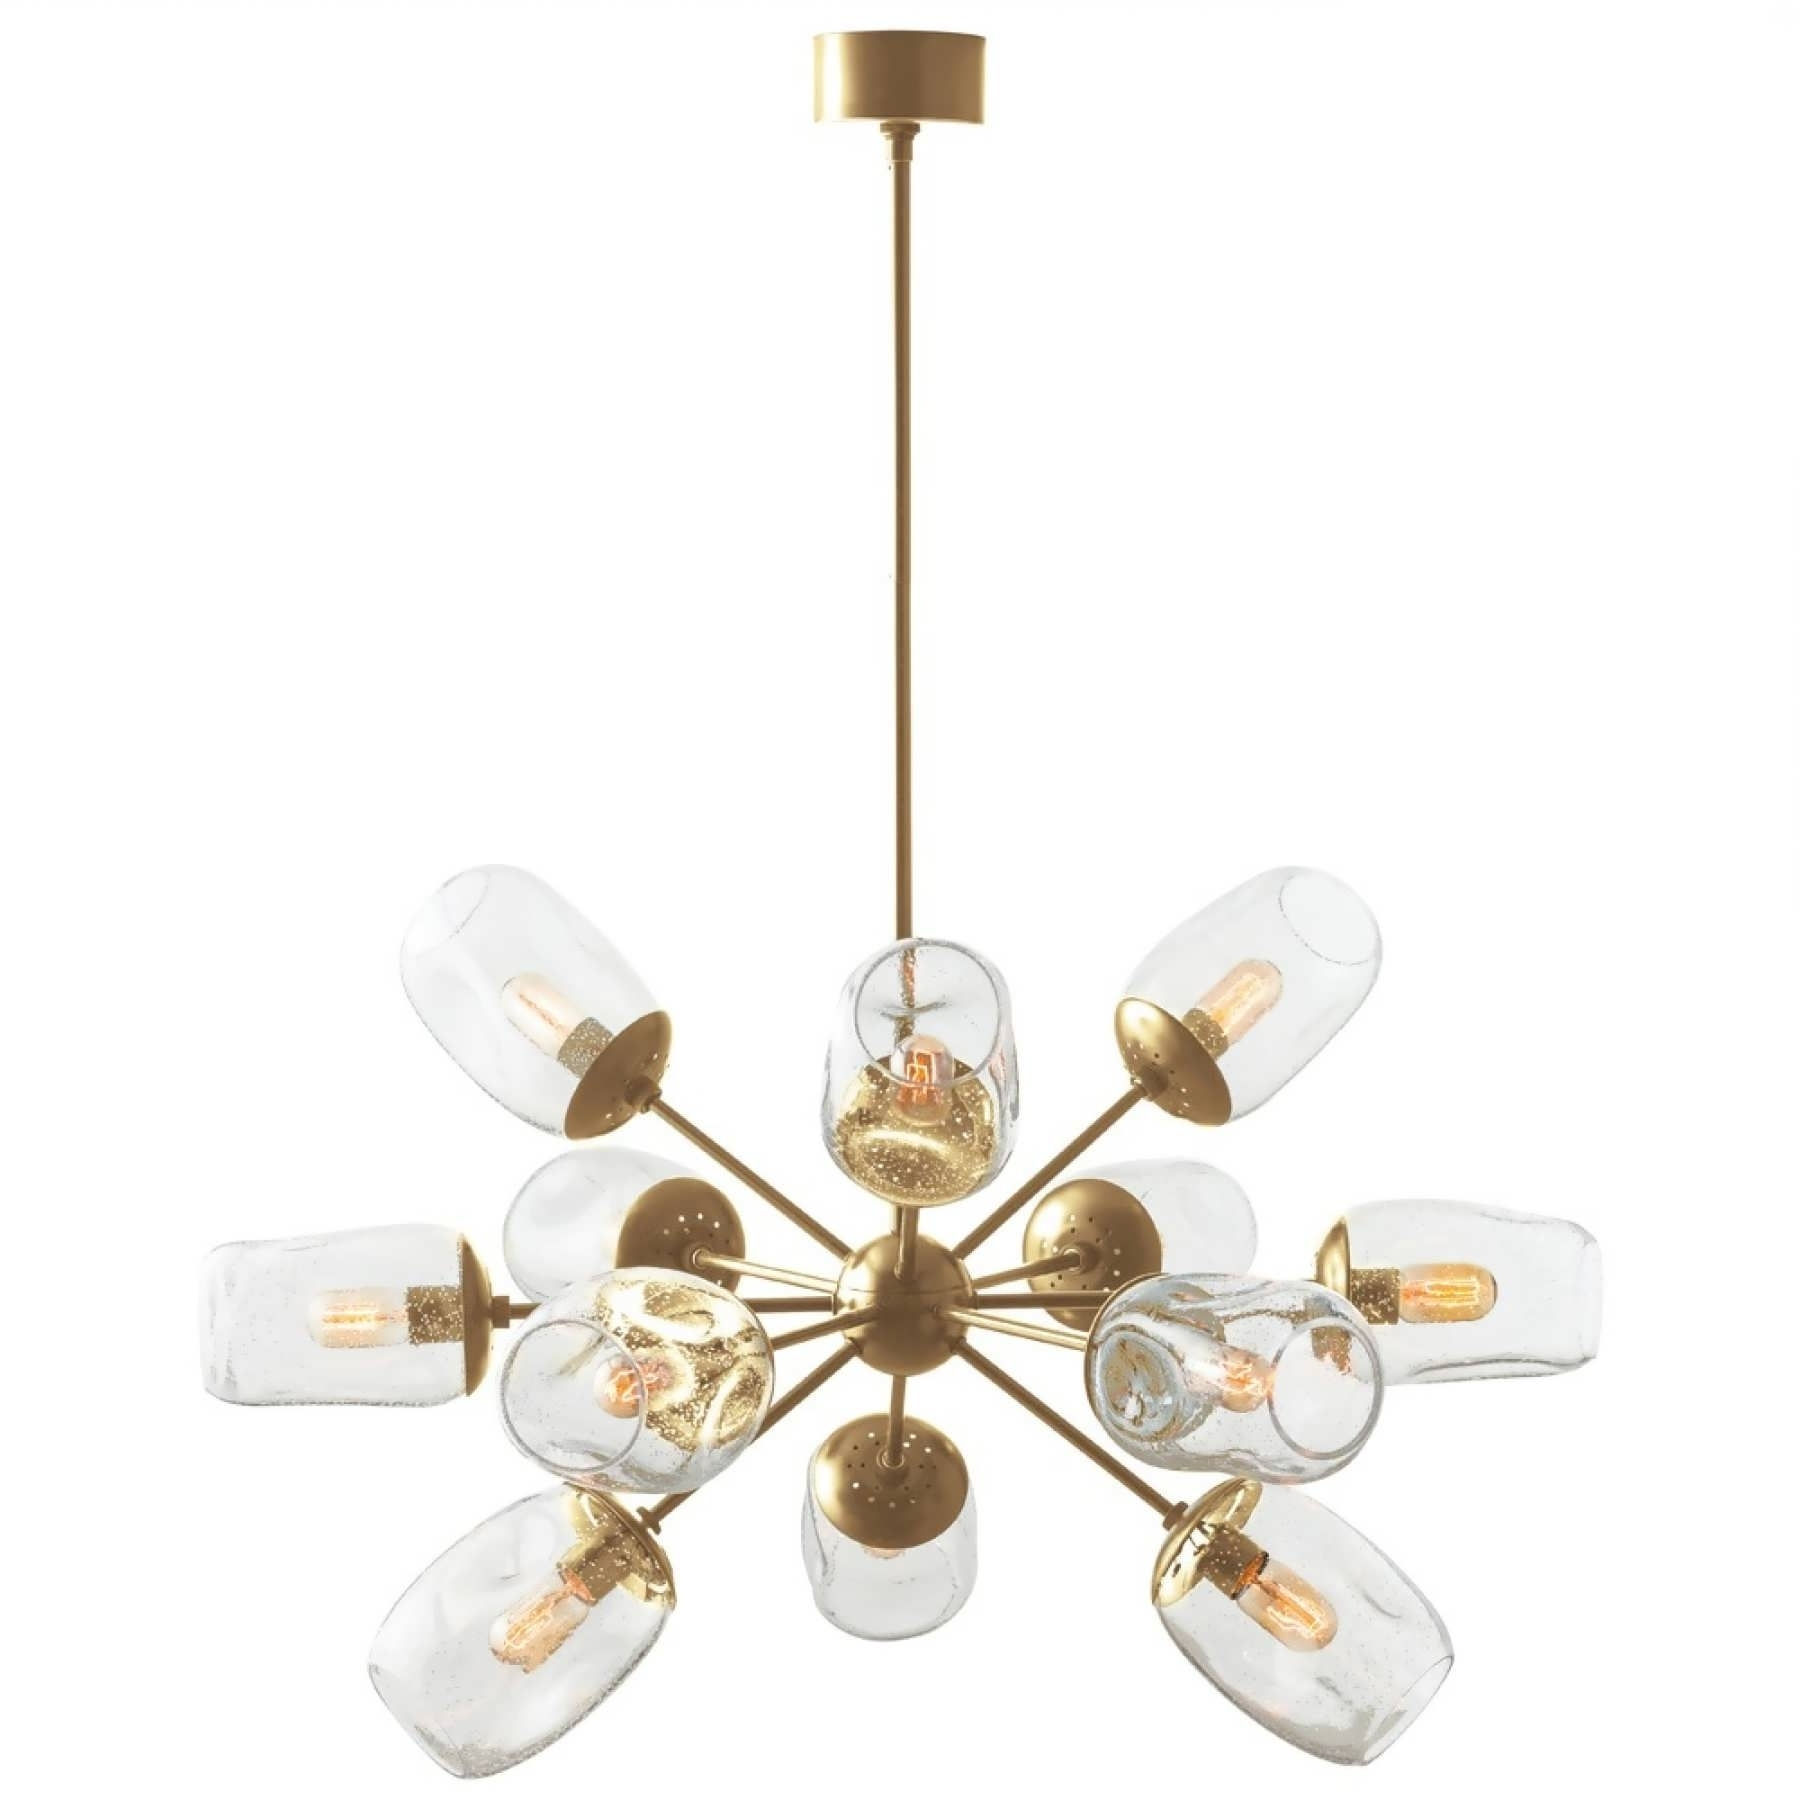 Gold Modern Chandelier For Popular Chandeliers Design : Marvelous Dining Room Chandeliers Large Modern (View 6 of 20)